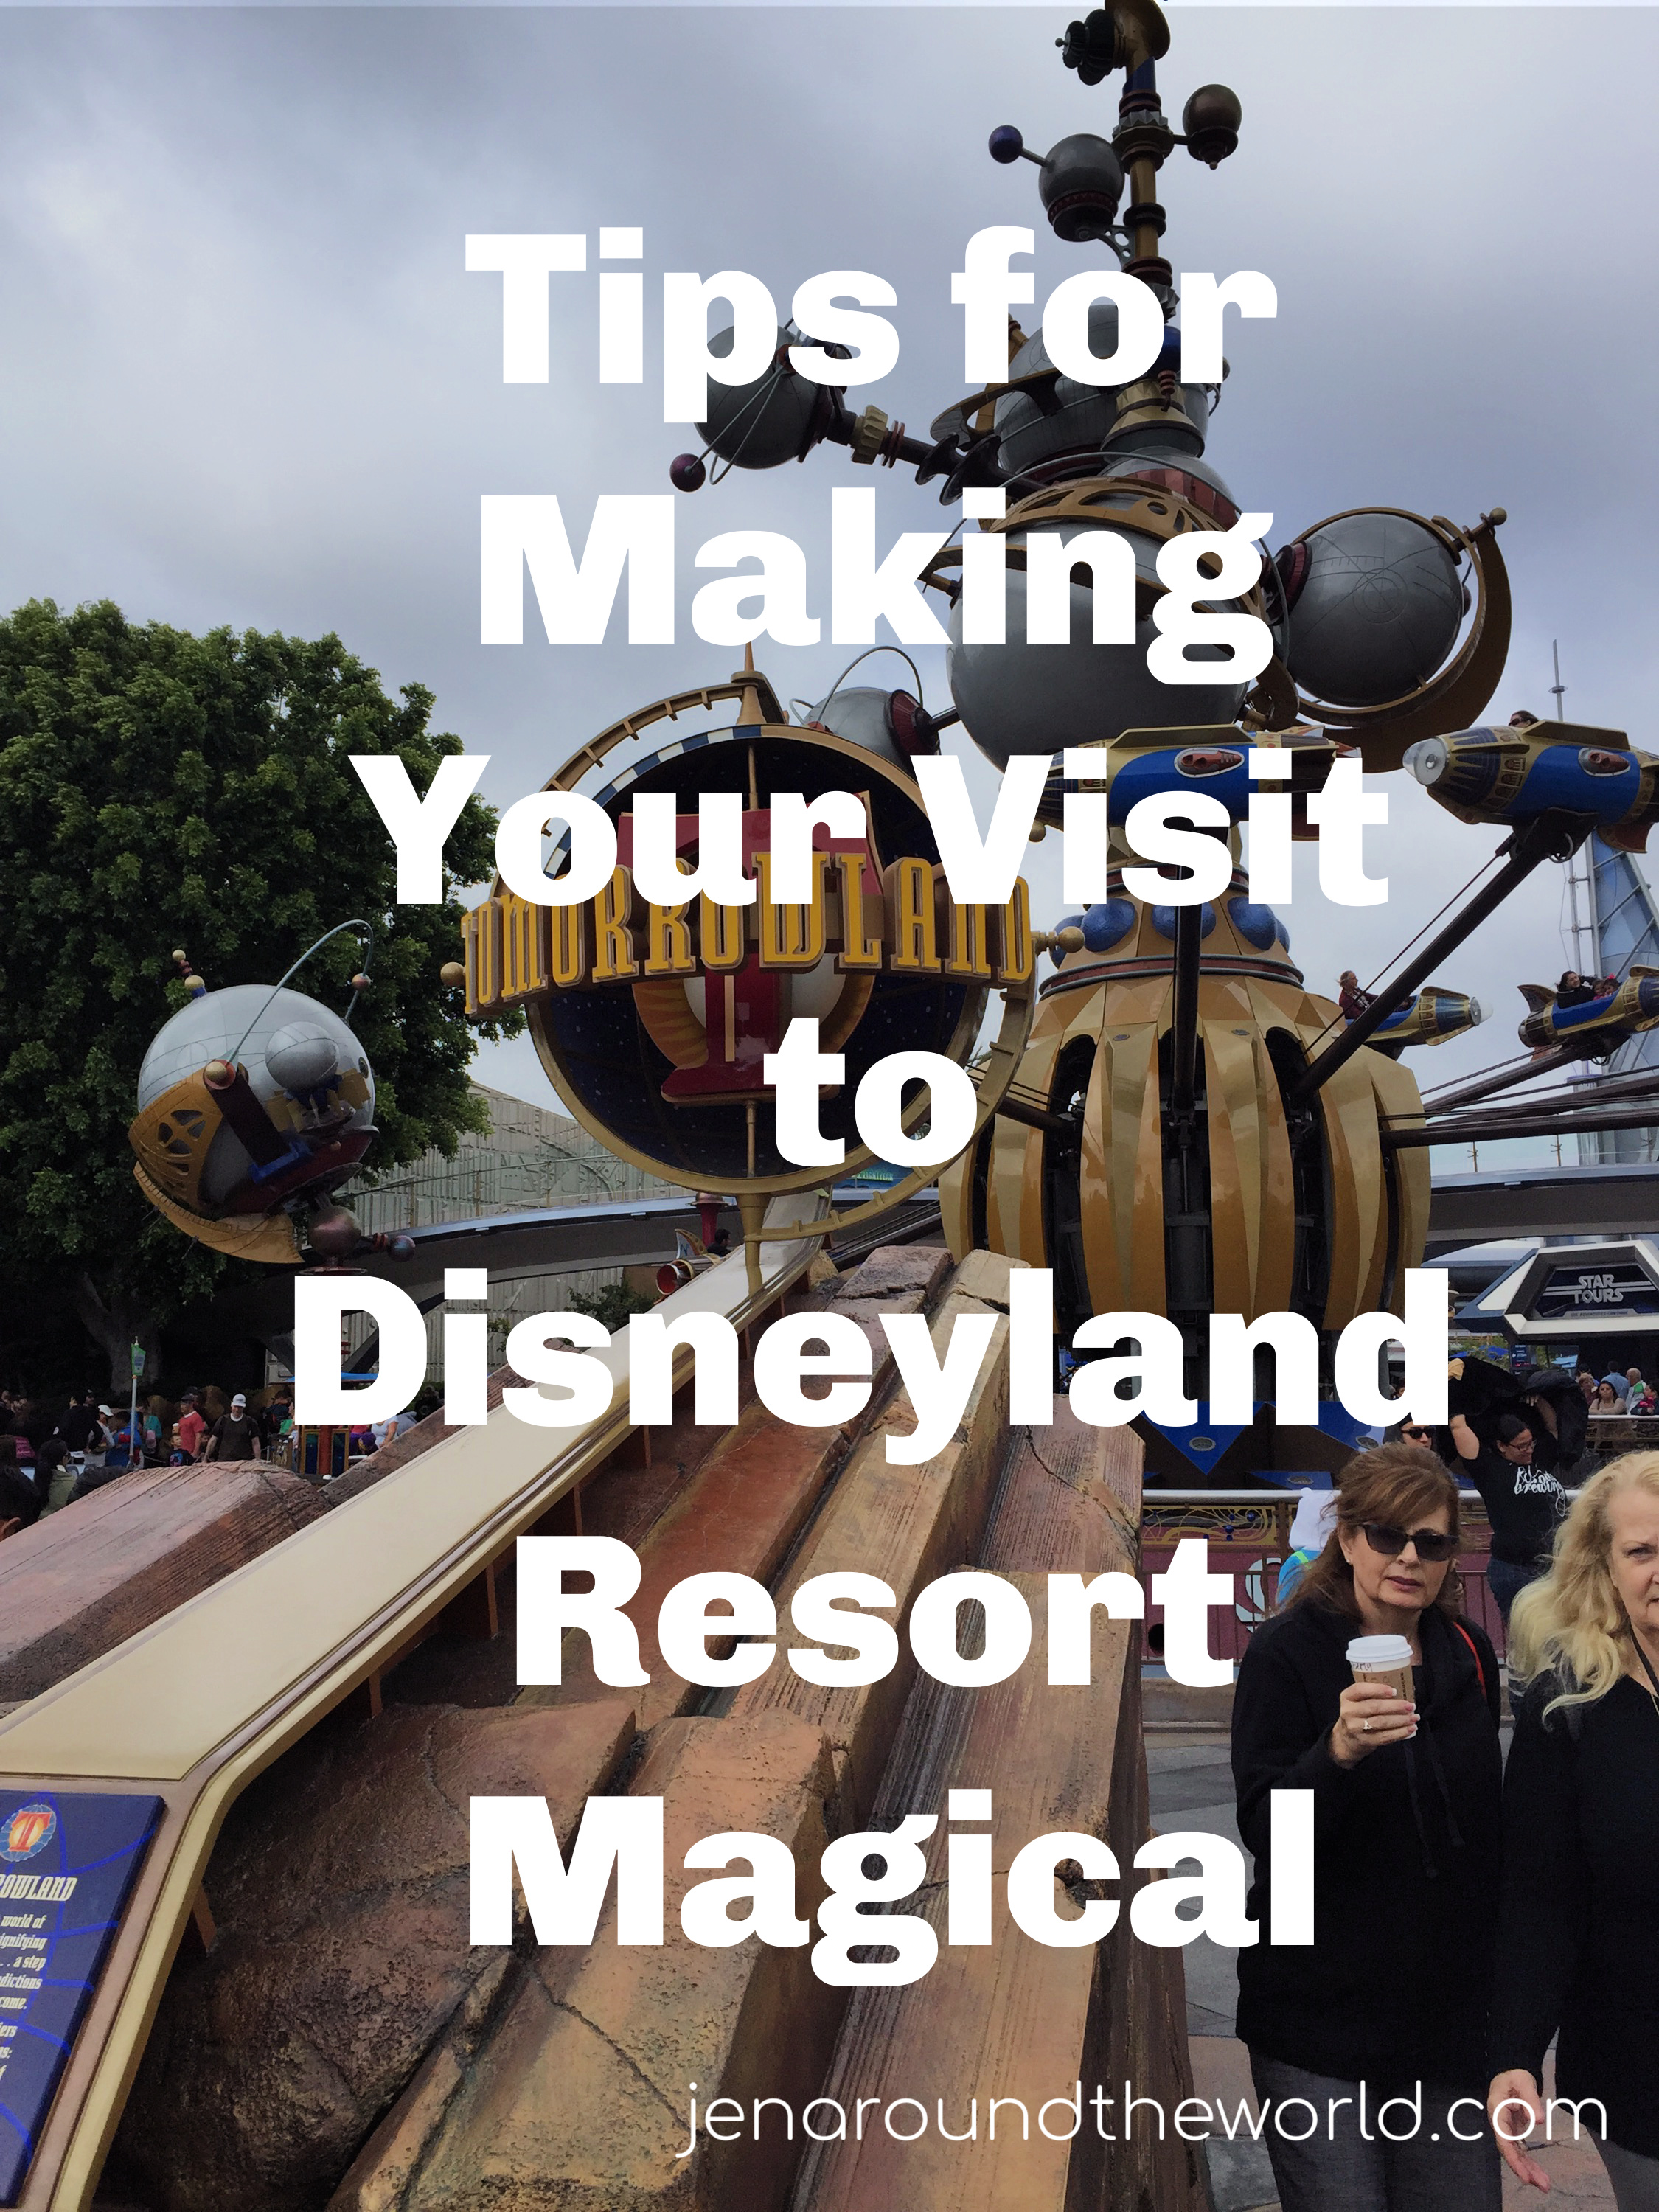 Tips for Making Your Visit to Disneyland Resort Magical